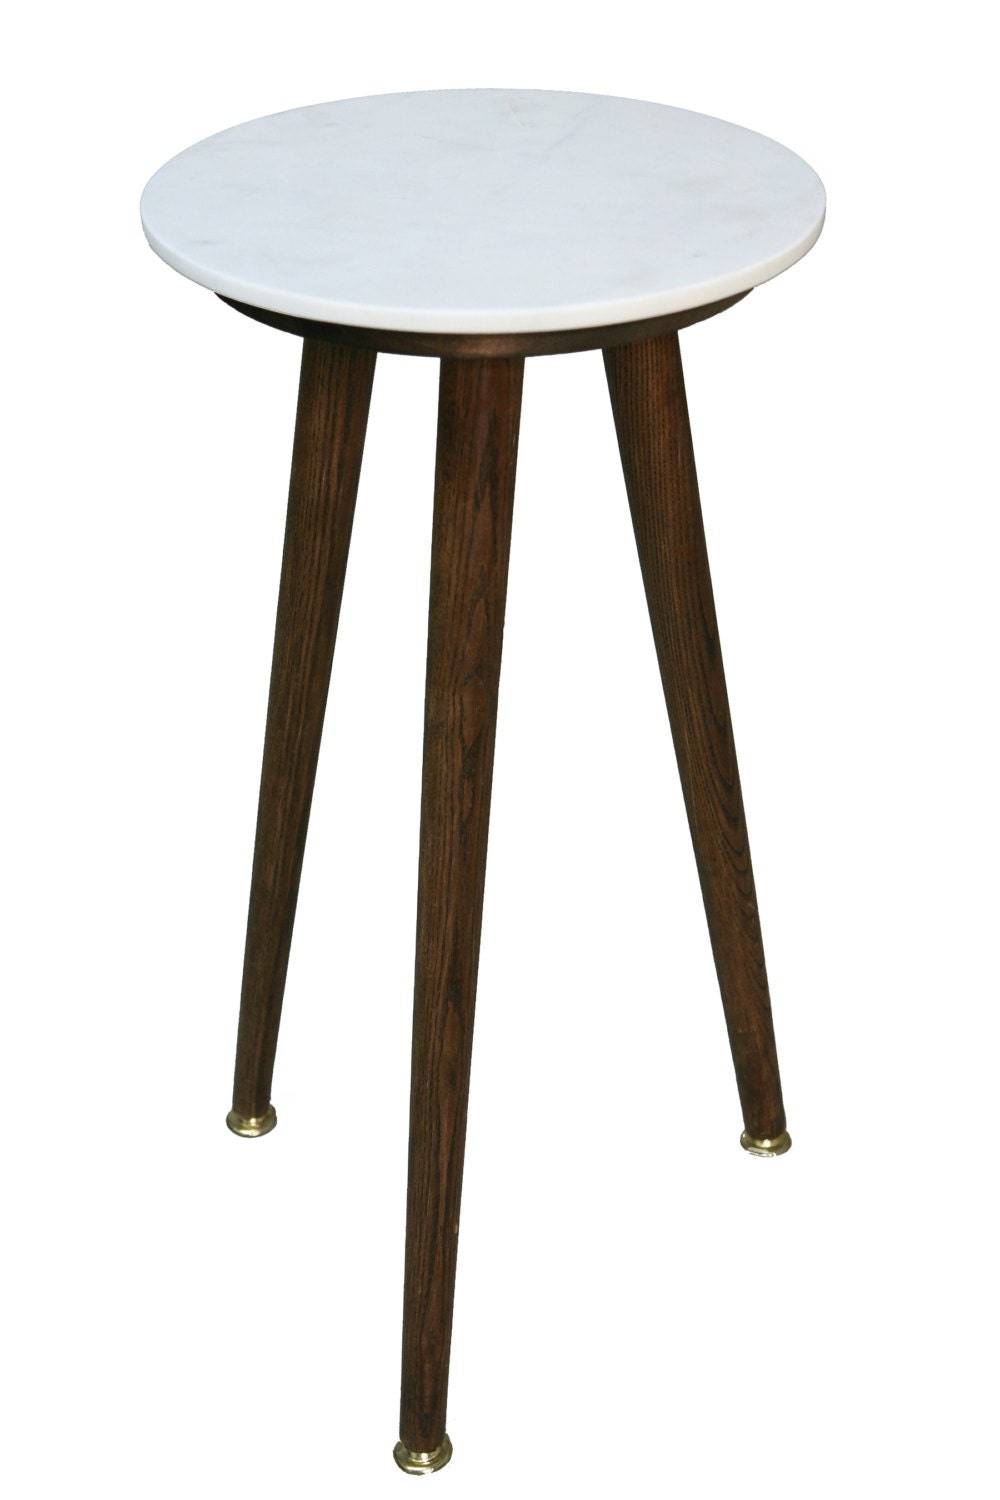 round white marble danish side table by postdallas on etsy. Black Bedroom Furniture Sets. Home Design Ideas